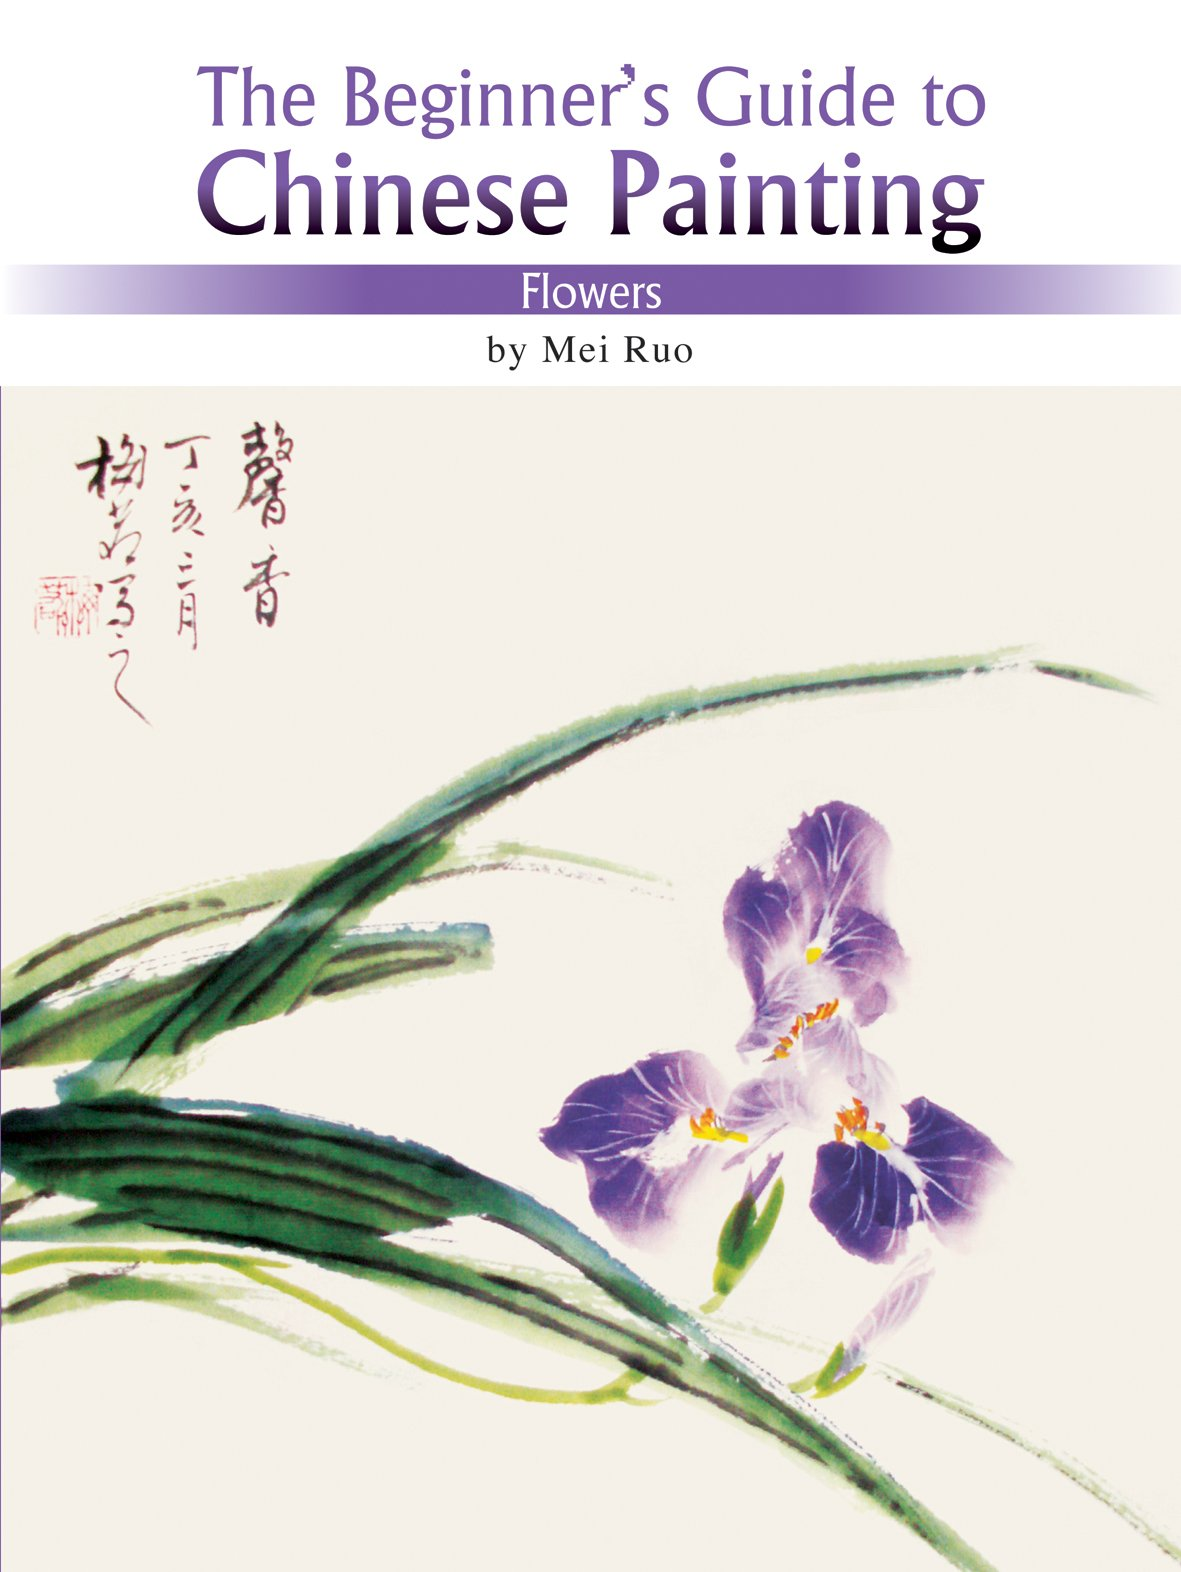 Flowers: The Beginner's Guide to Chinese Painting: Amazon.co.uk: Mei Ruo:  Books